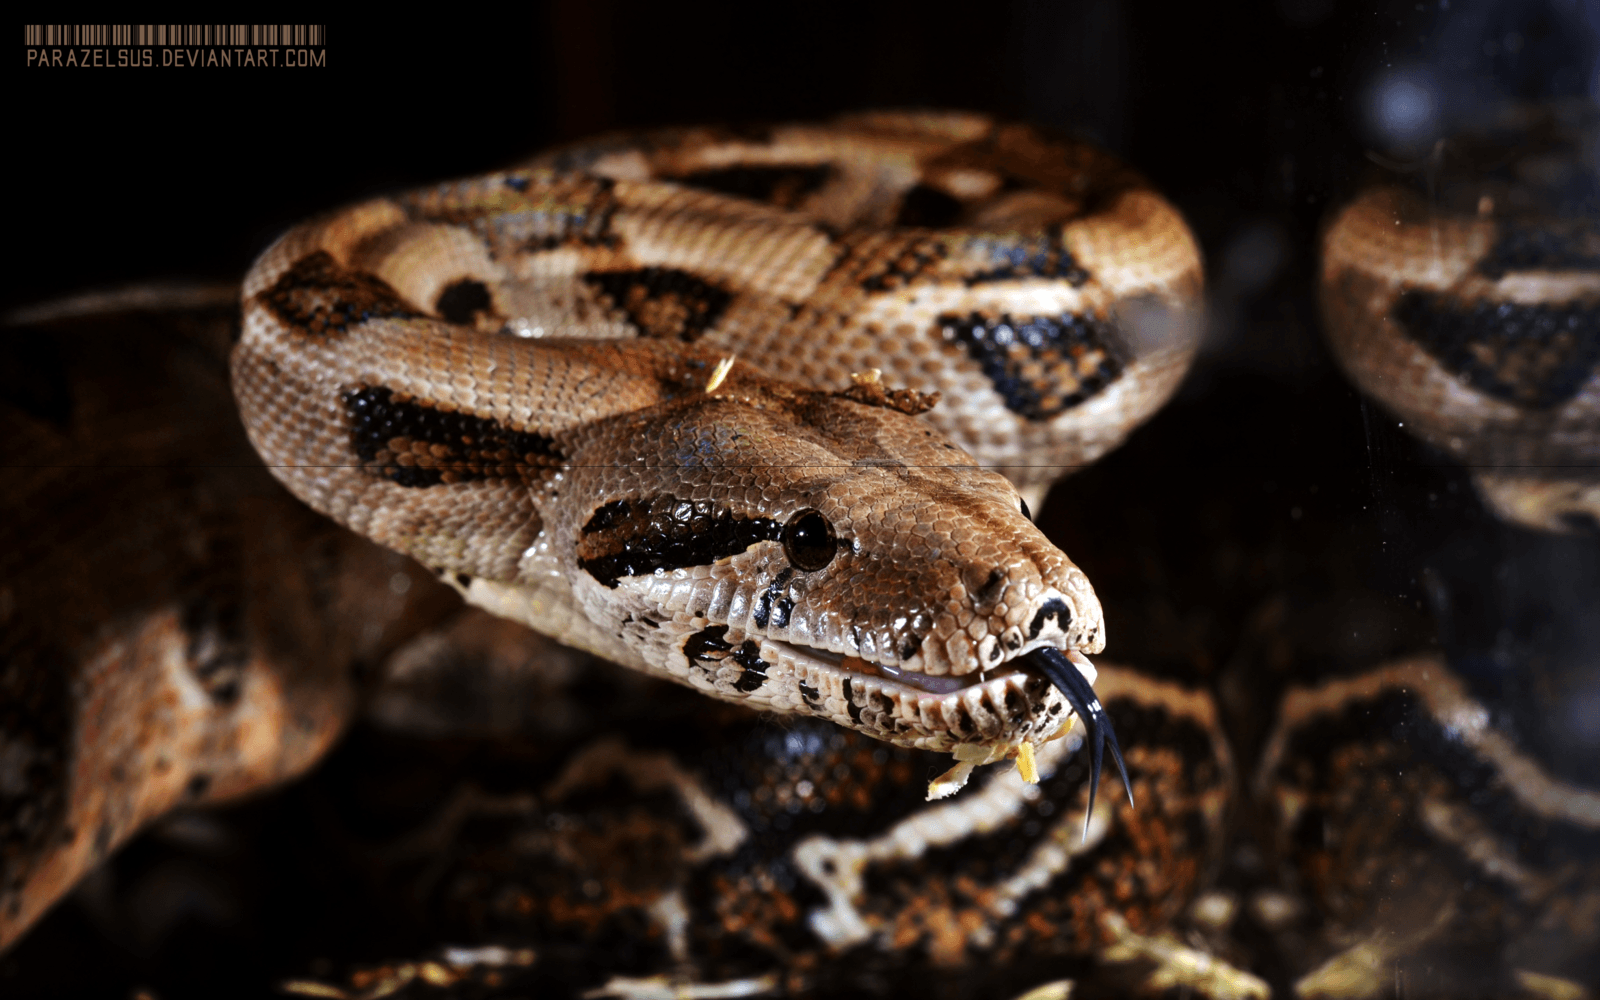 Boa Constrictor Imperator sp. Firebelly 016 by Parazelsus